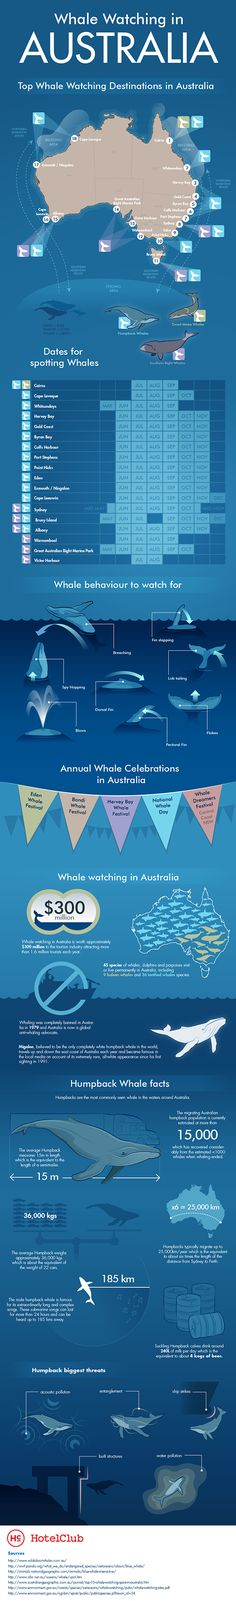 Australia is the perfect place for a whale watching holiday and here is a great guide for getting your timing right!